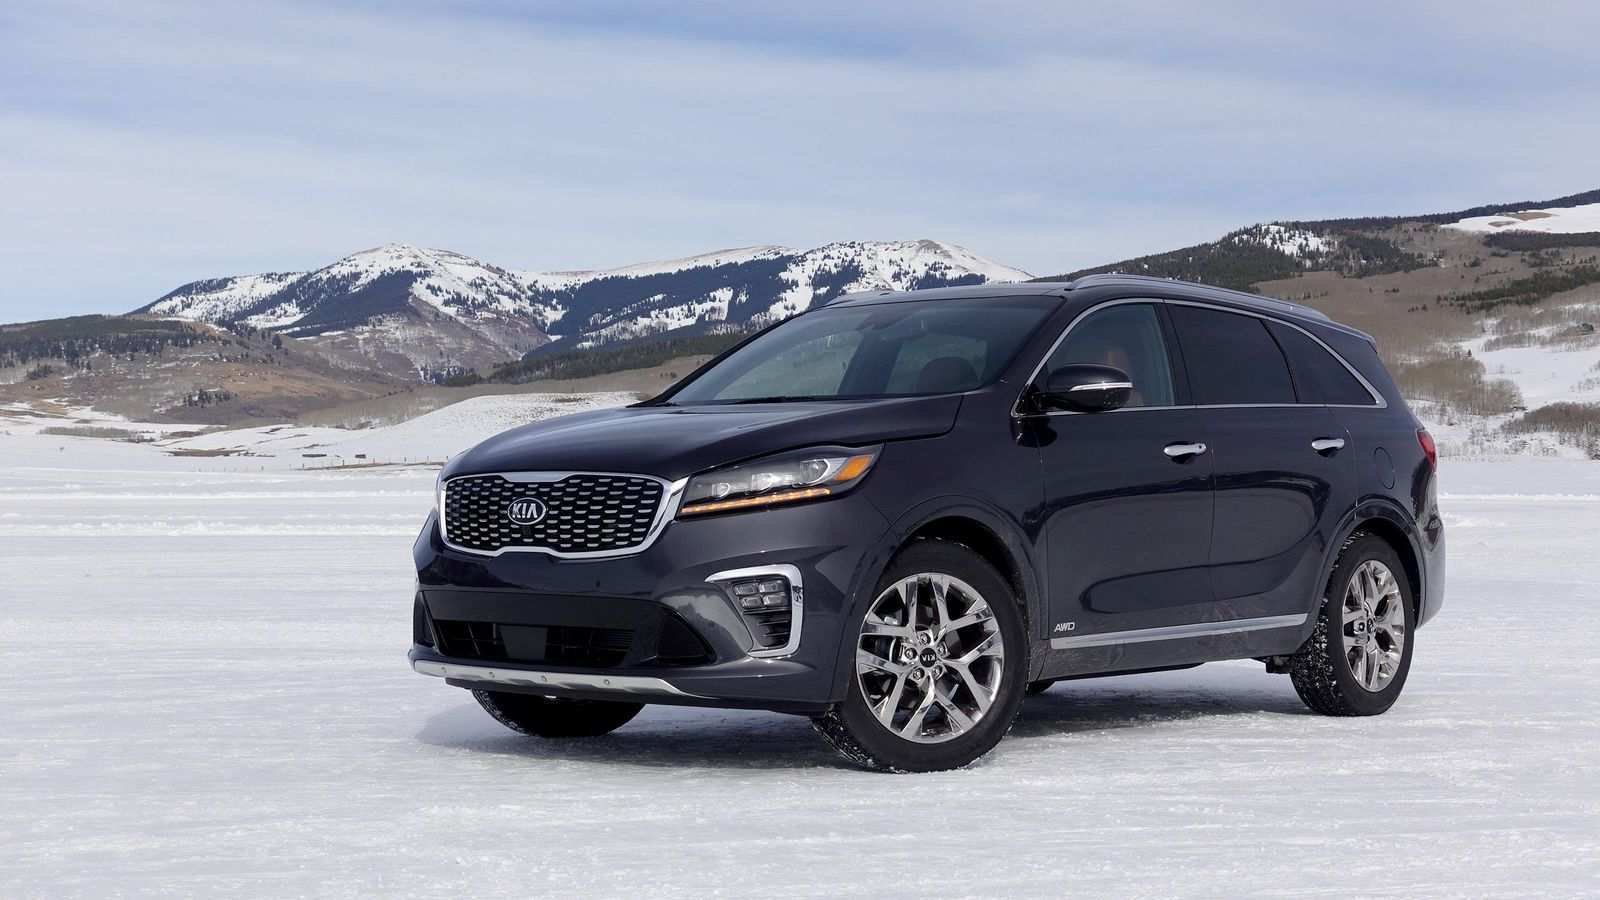 45 The 2019 Kia Sorento Review Exterior And Interior